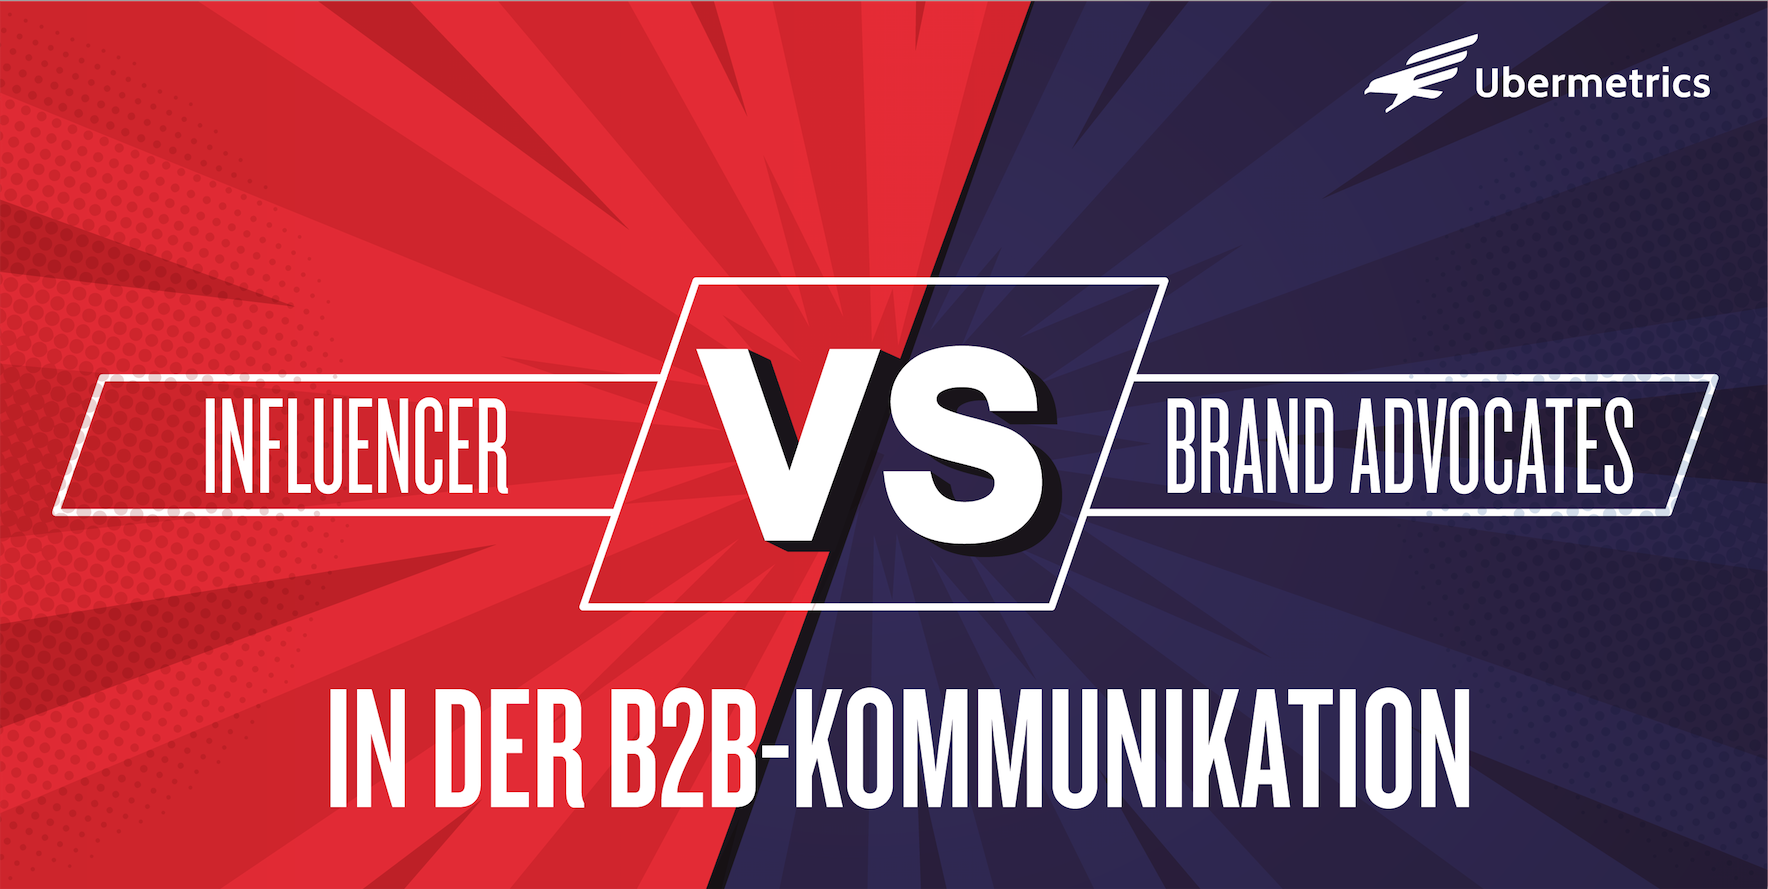 Influencer vs Brand Advocates in der B2B-Kommunikation